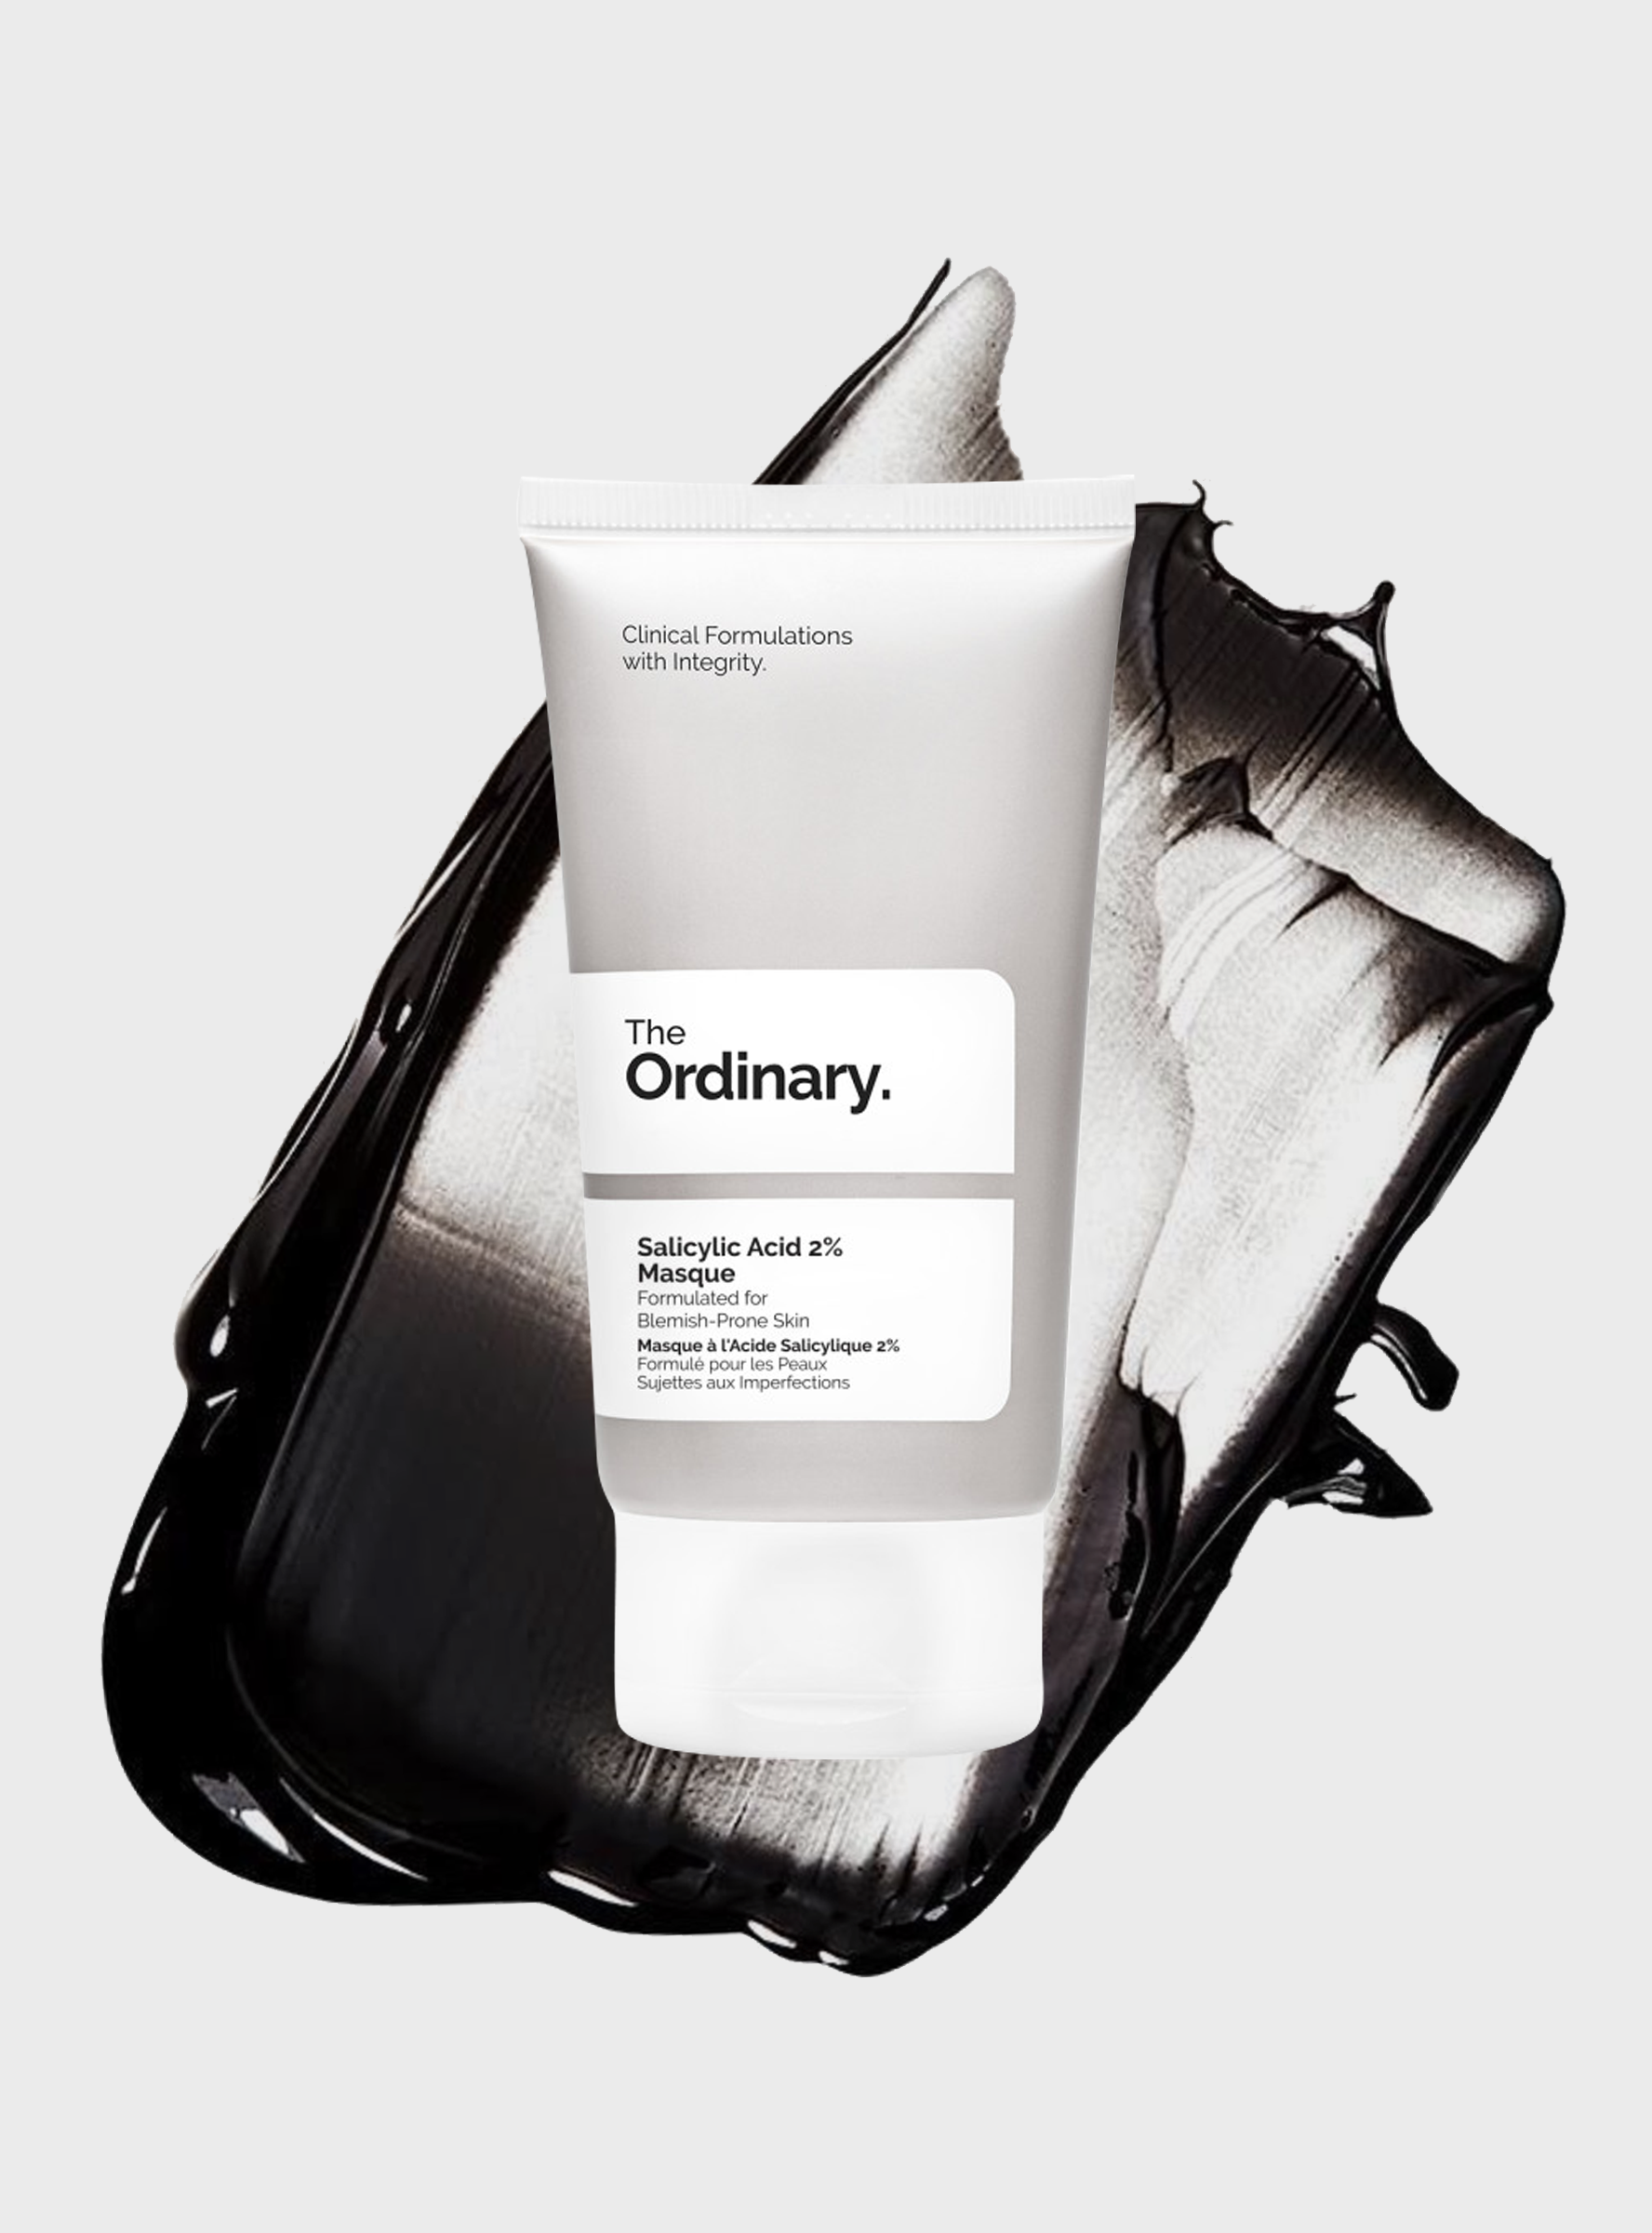 The Ordinary's First Face Mask Worked Wonders On My Acne